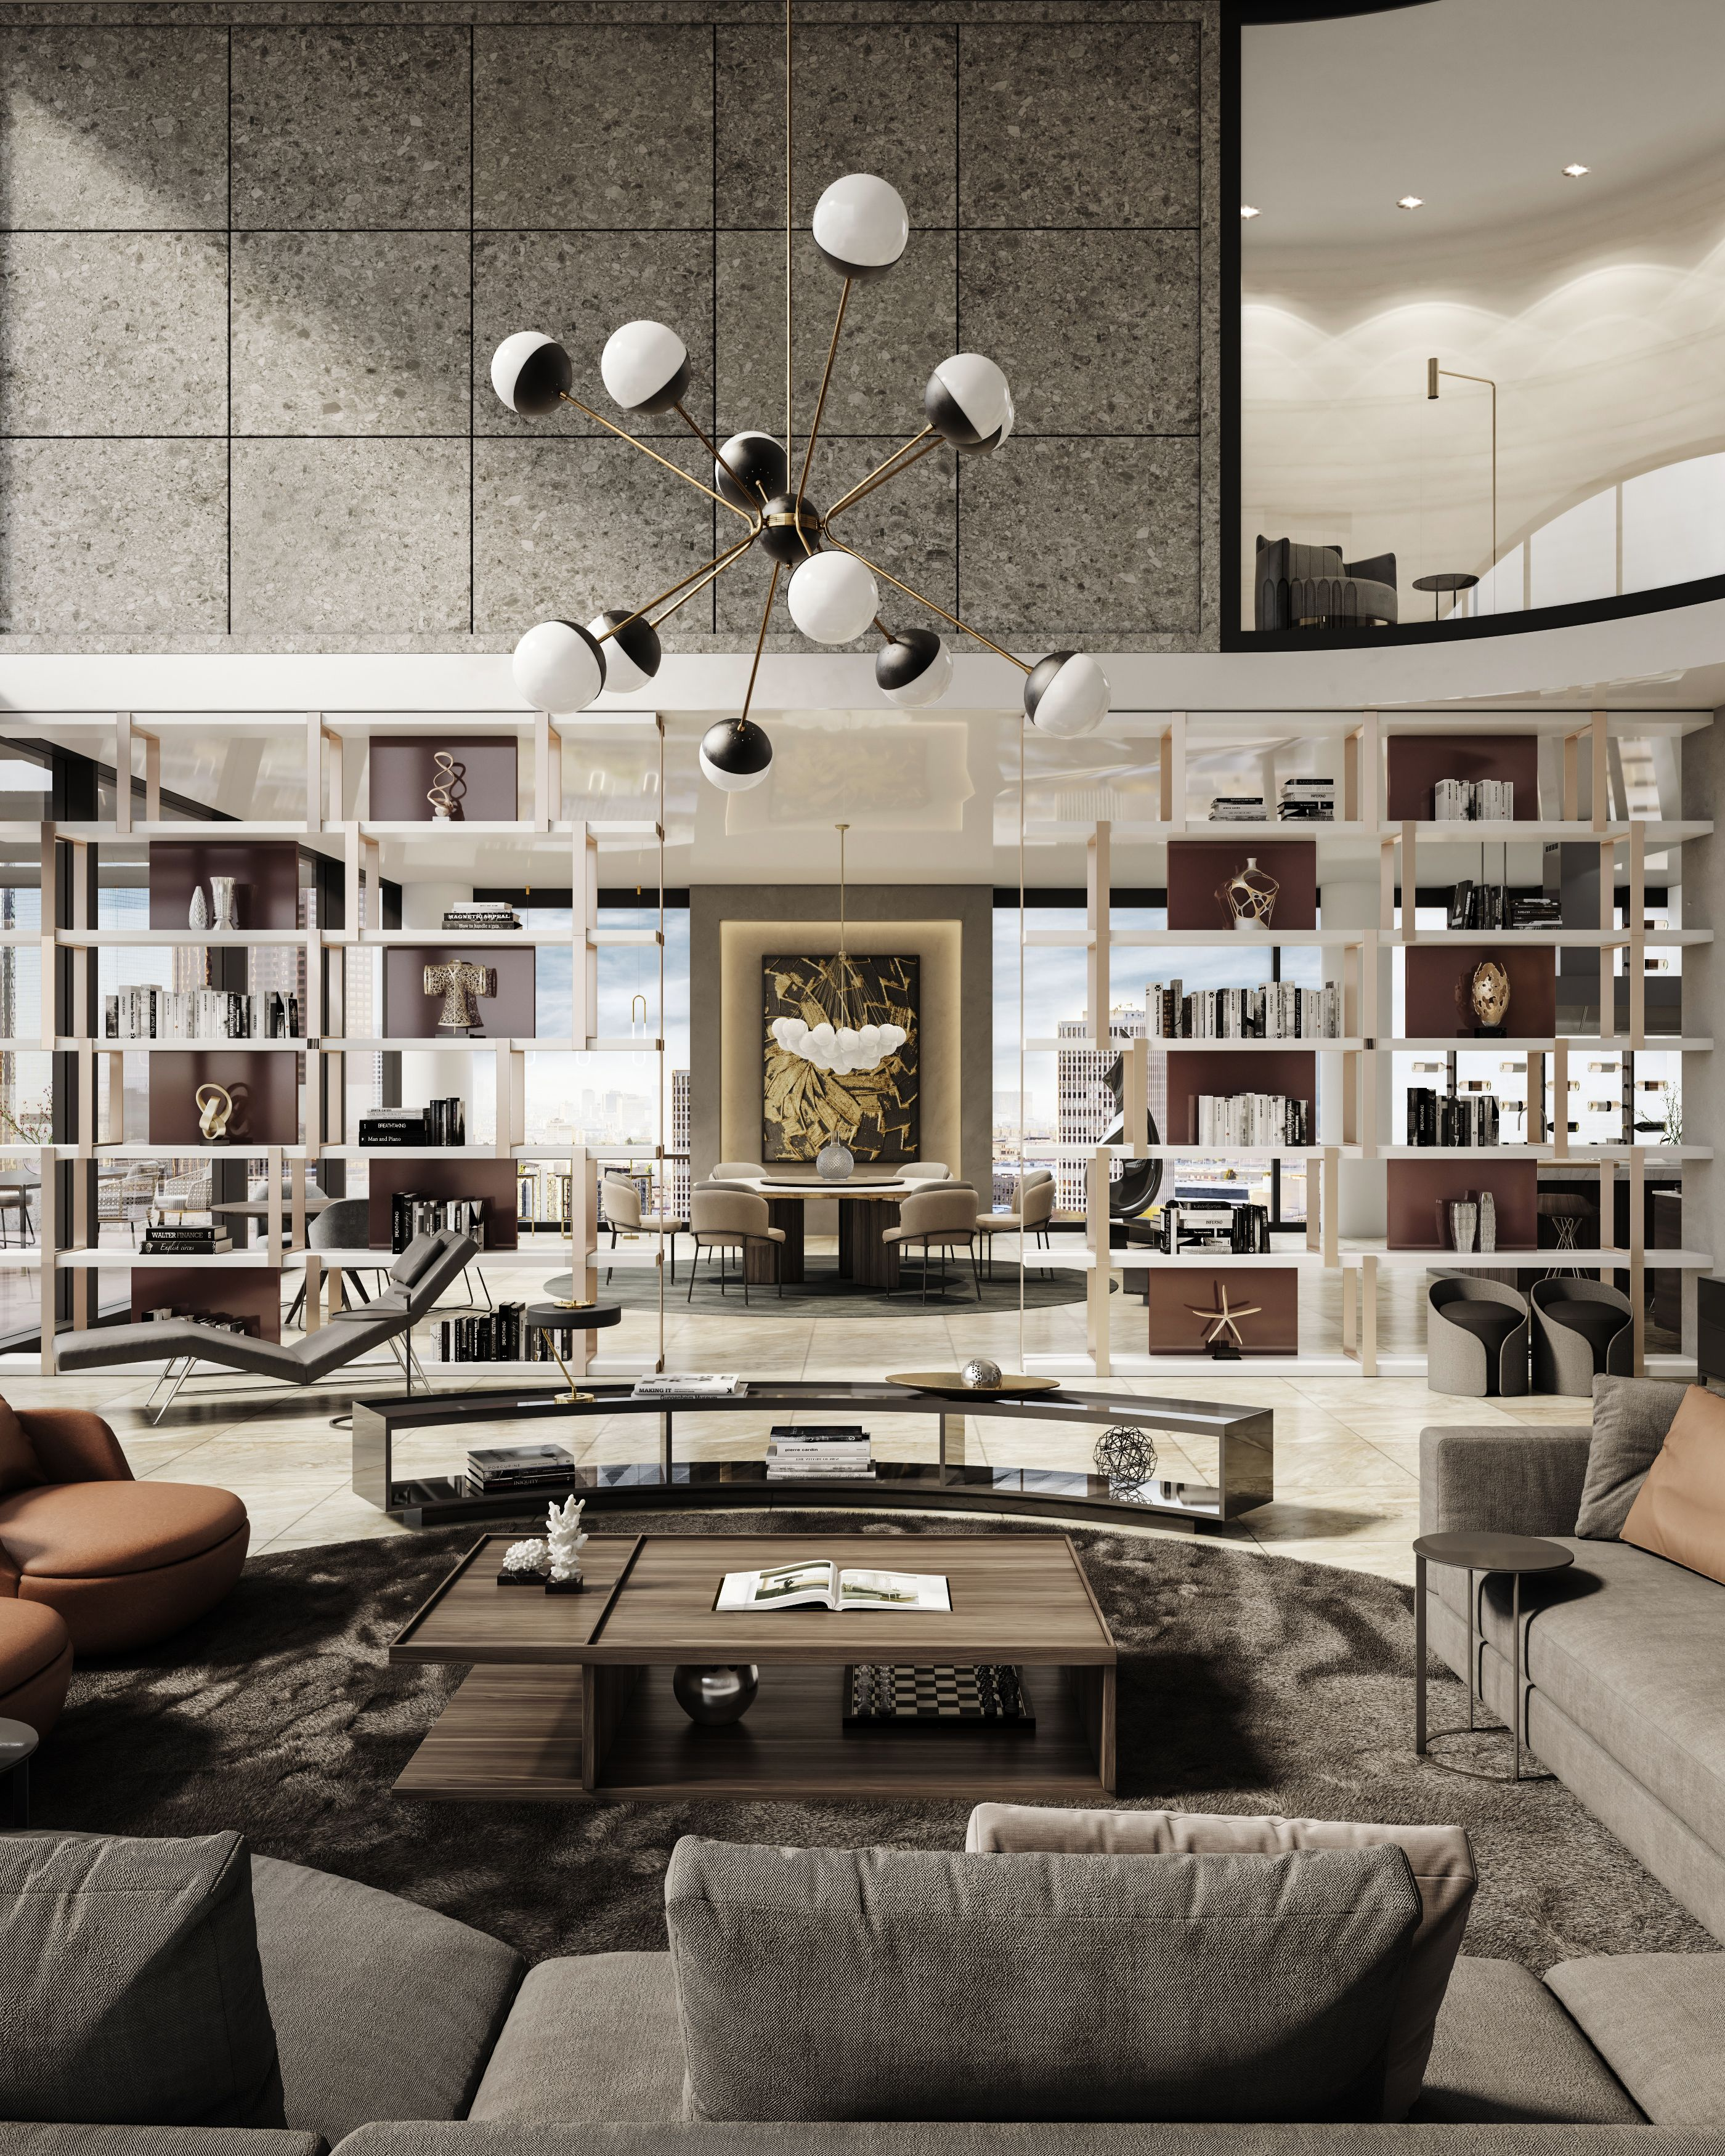 Autodesk Room Design: Pin By Georgios Tataridis On Penthouse In Los Angeles